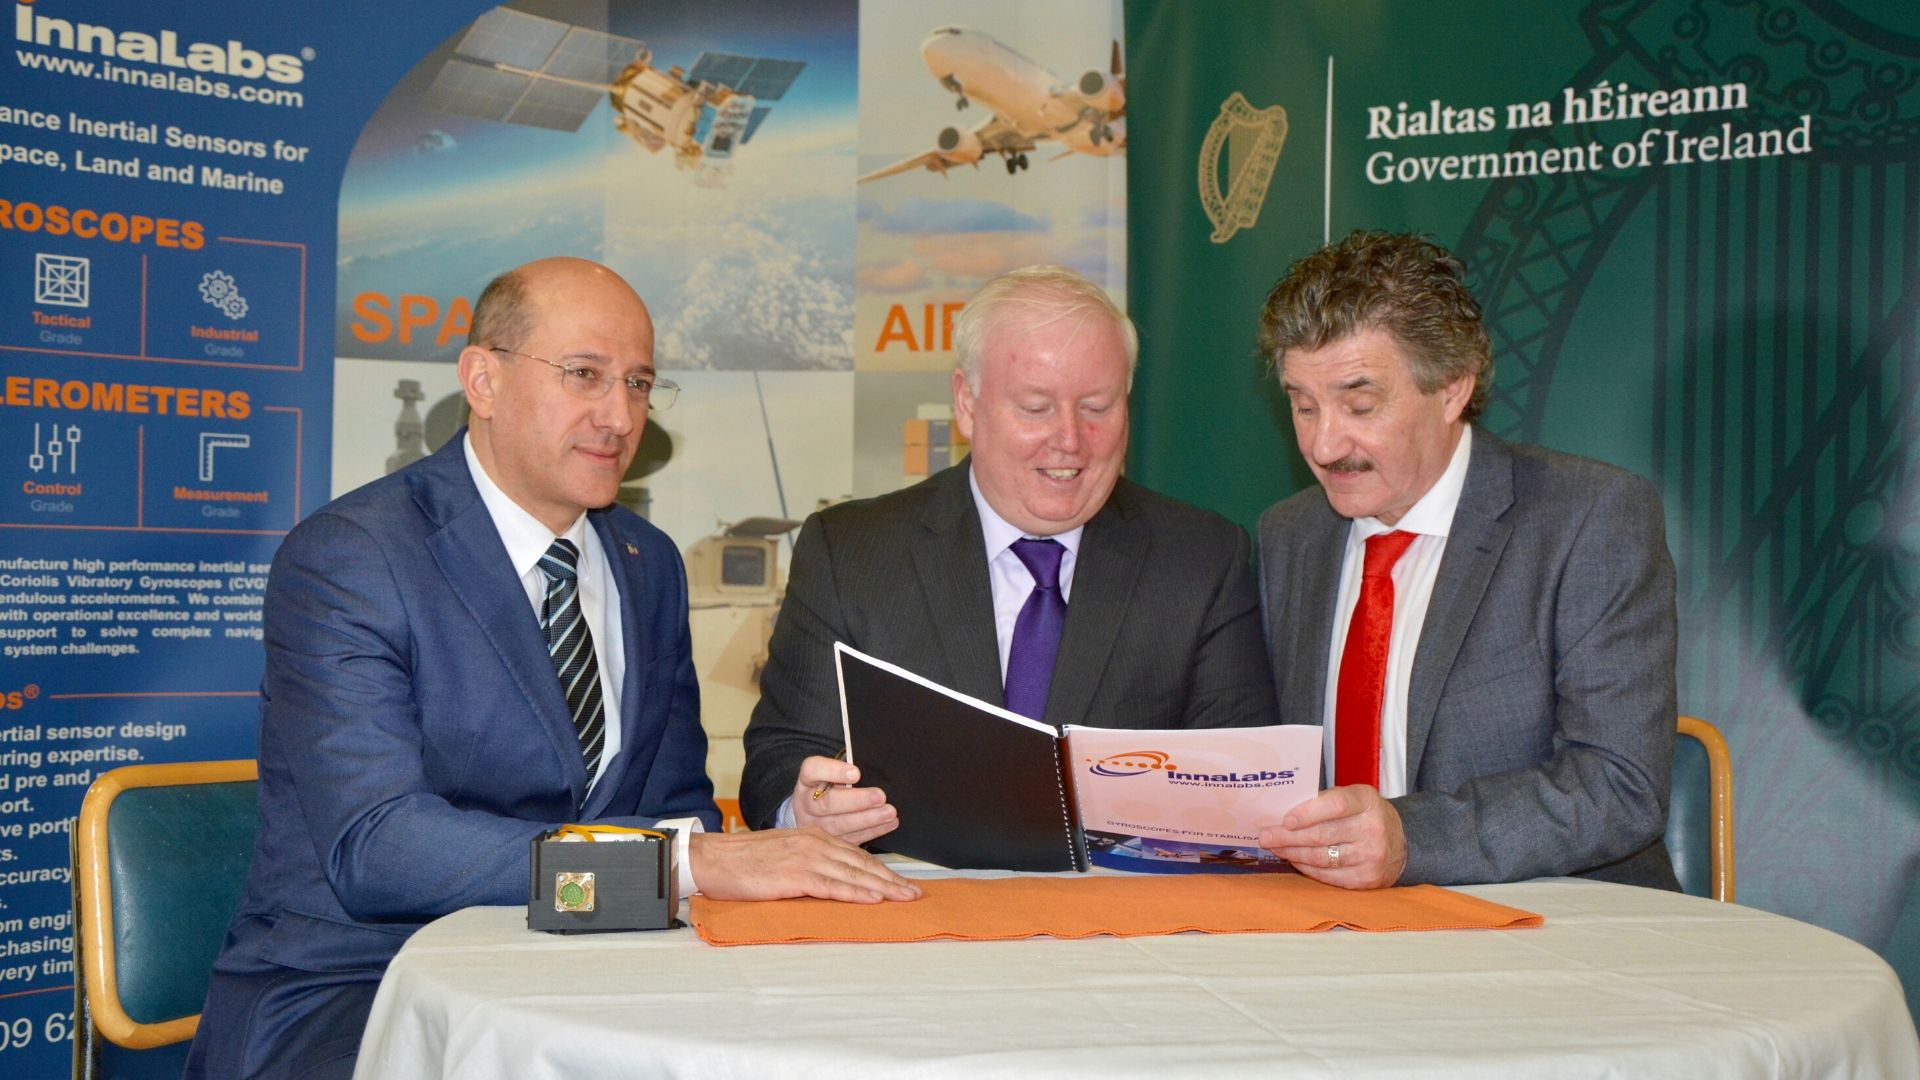 José Beitia, CTO (Left); John OLeary, CEO (Middle);Irish Minister for Business, John Halligan